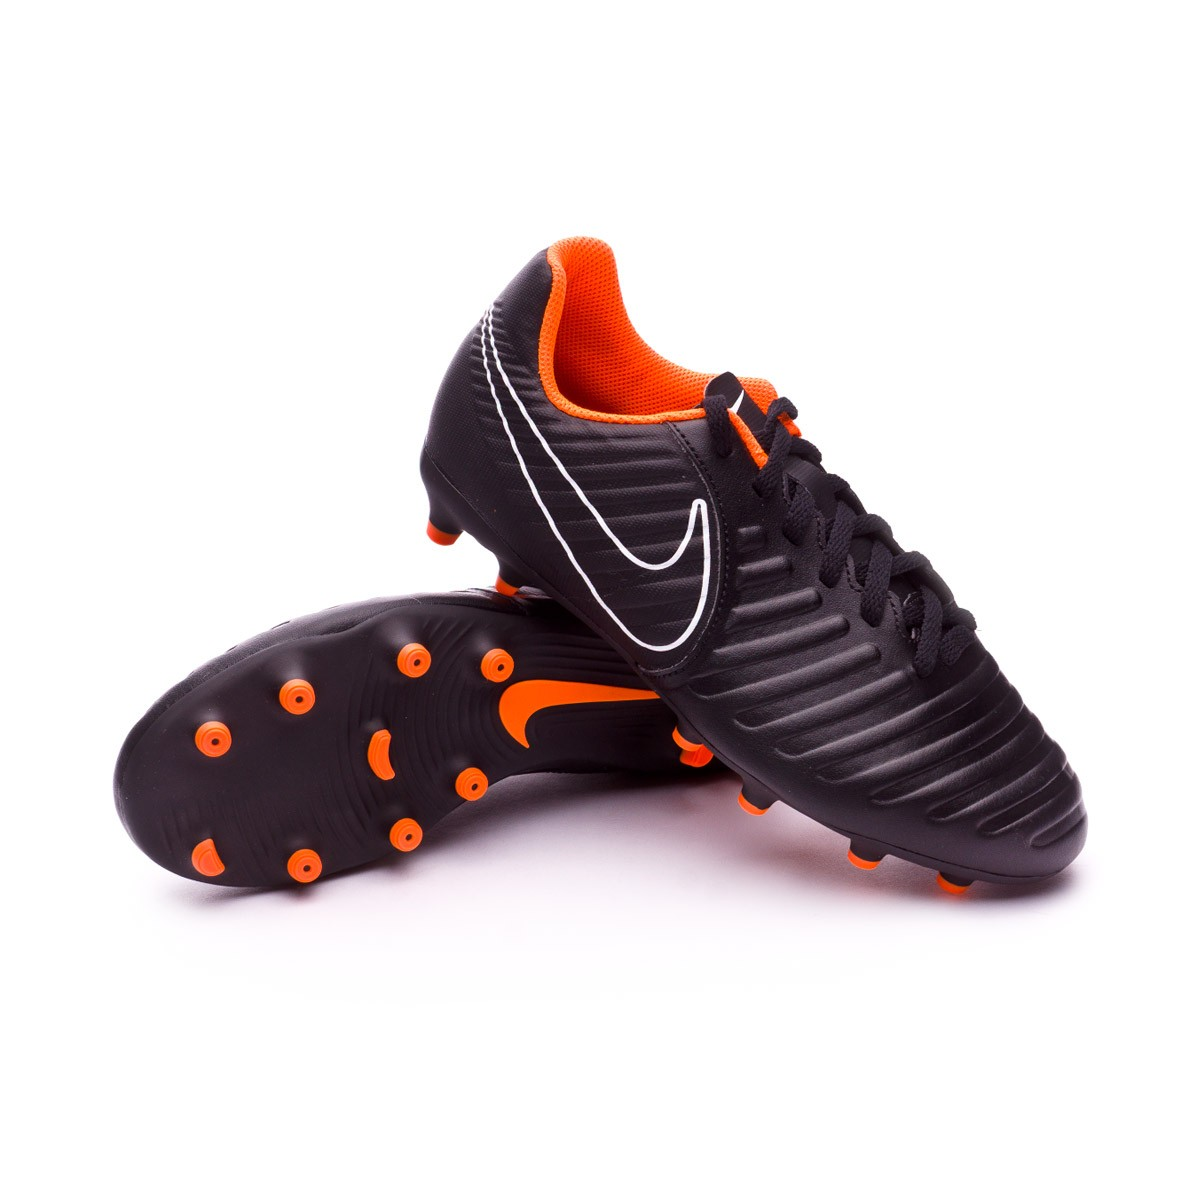 9ea386a65 Football Boots Nike Kids Tiempo Legend VII Club FG Black-Total ...